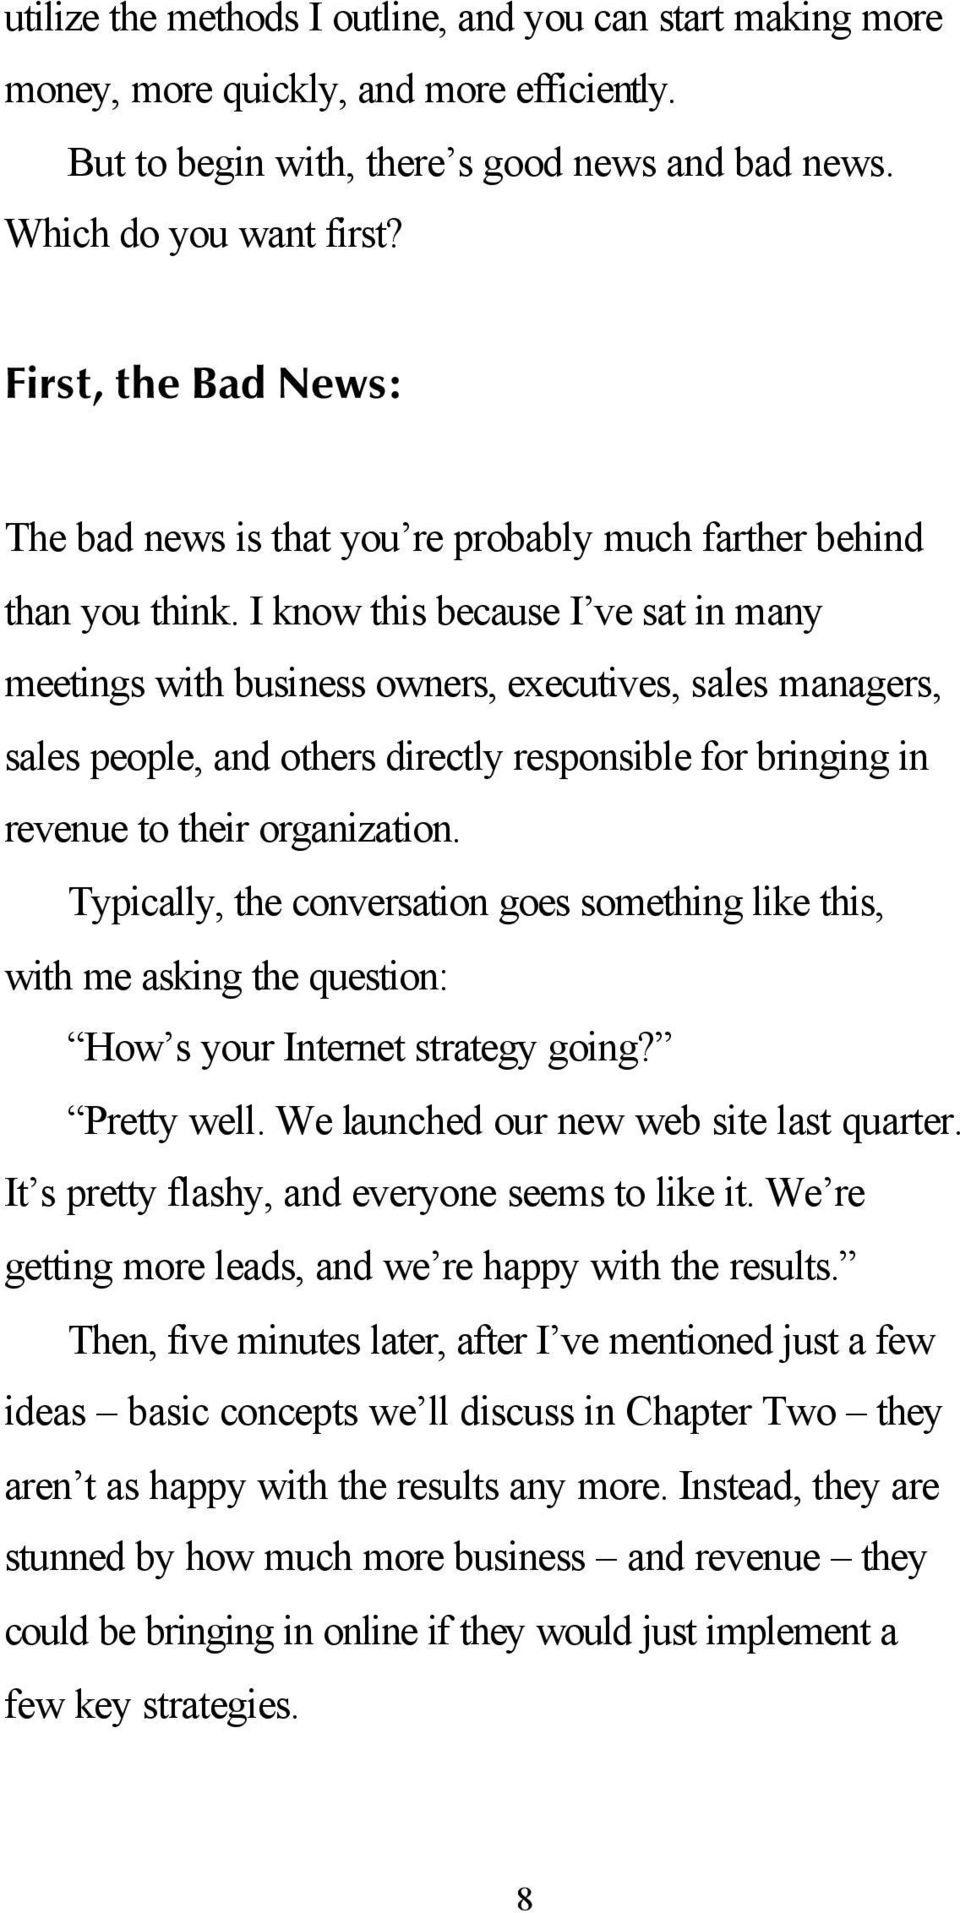 I know this because I ve sat in many meetings with business owners, executives, sales managers, sales people, and others directly responsible for bringing in revenue to their organization.